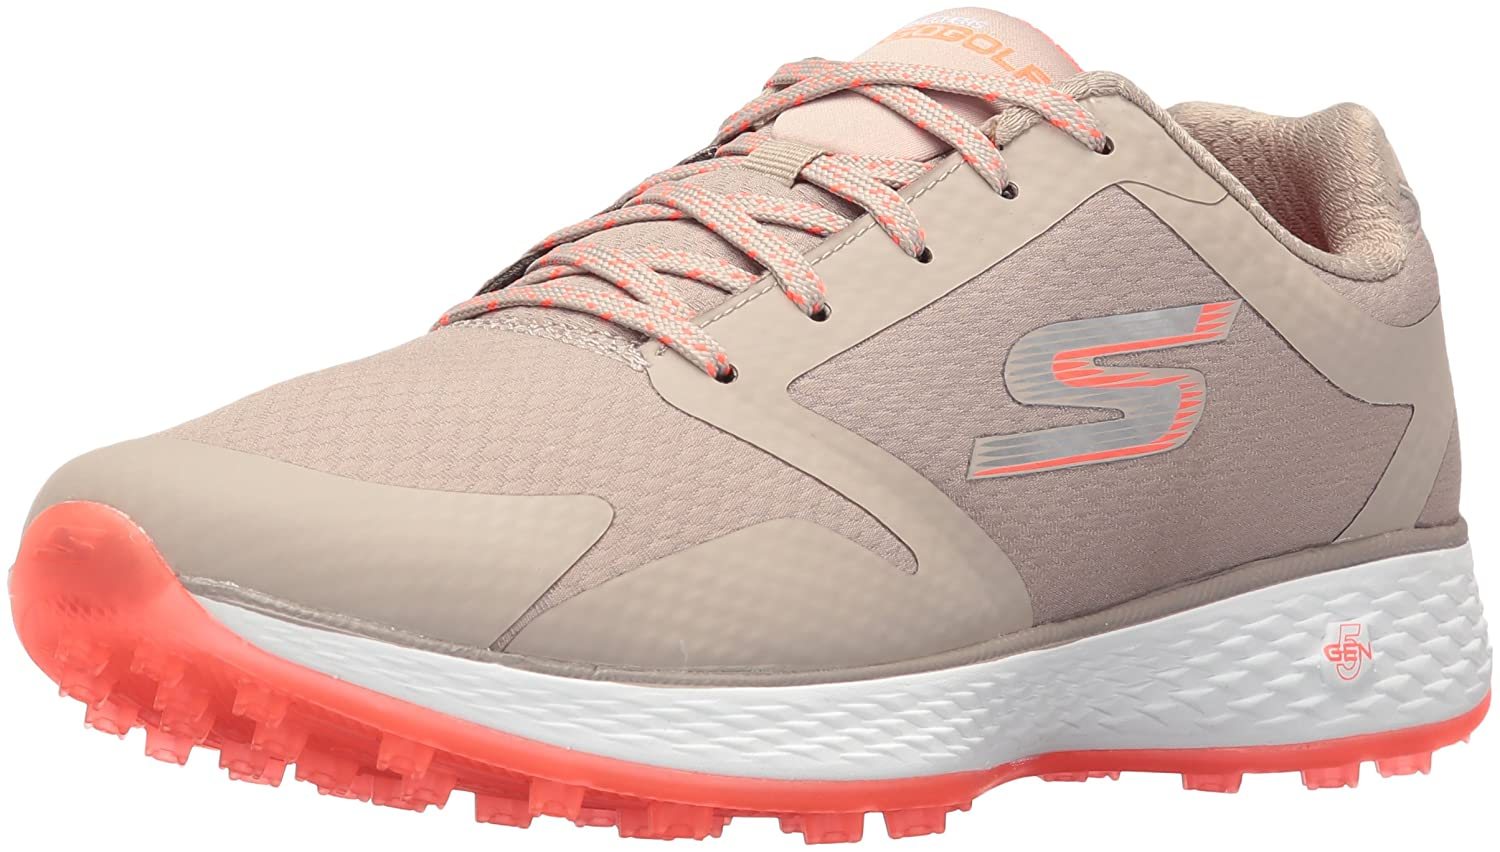 Skechers Golf Women's Go Golf Birdie Golf Skechers Shoe B01GUVQ0OM 7.5 B(M) US|Natural/Coral 891cf5